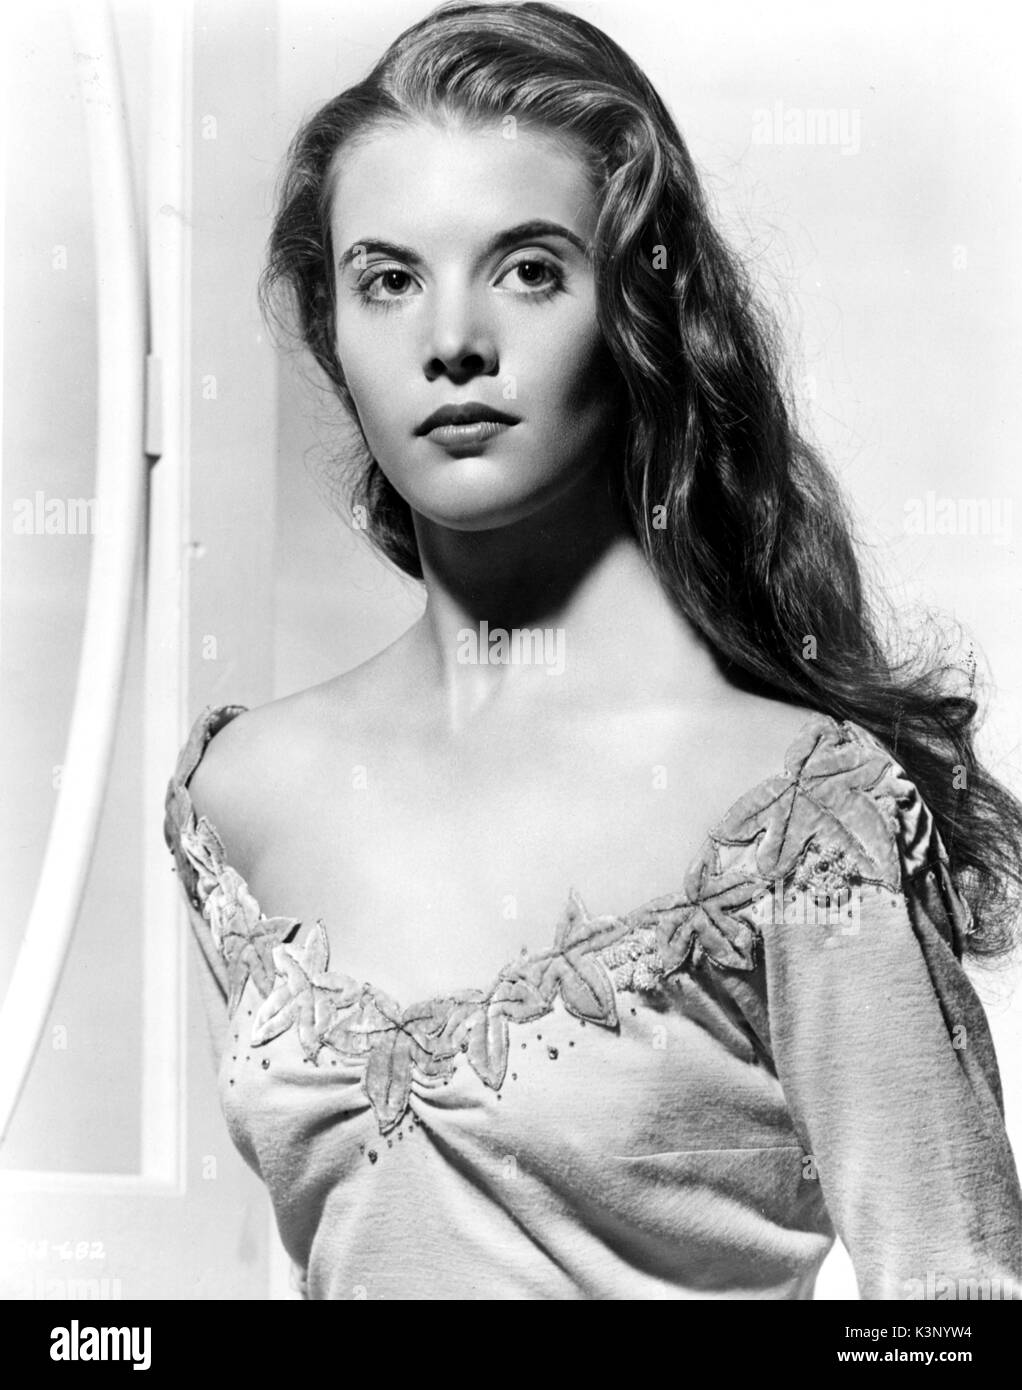 lois smith james deanlois smith young, lois smith, lois smith actress, lois smith james dean, lois smith daughter, lois smith desperate housewives, lois smith imdb, lois smith obituary, lois smith east of eden, lois smith net worth, lois smith movies, lois smith twister, lois smith wiki, lois smith harvard, lois smith lady bird, lois smith publicist, lois smith facebook, lois smith obituary epworth iowa, lois smith age, lois smith cibc